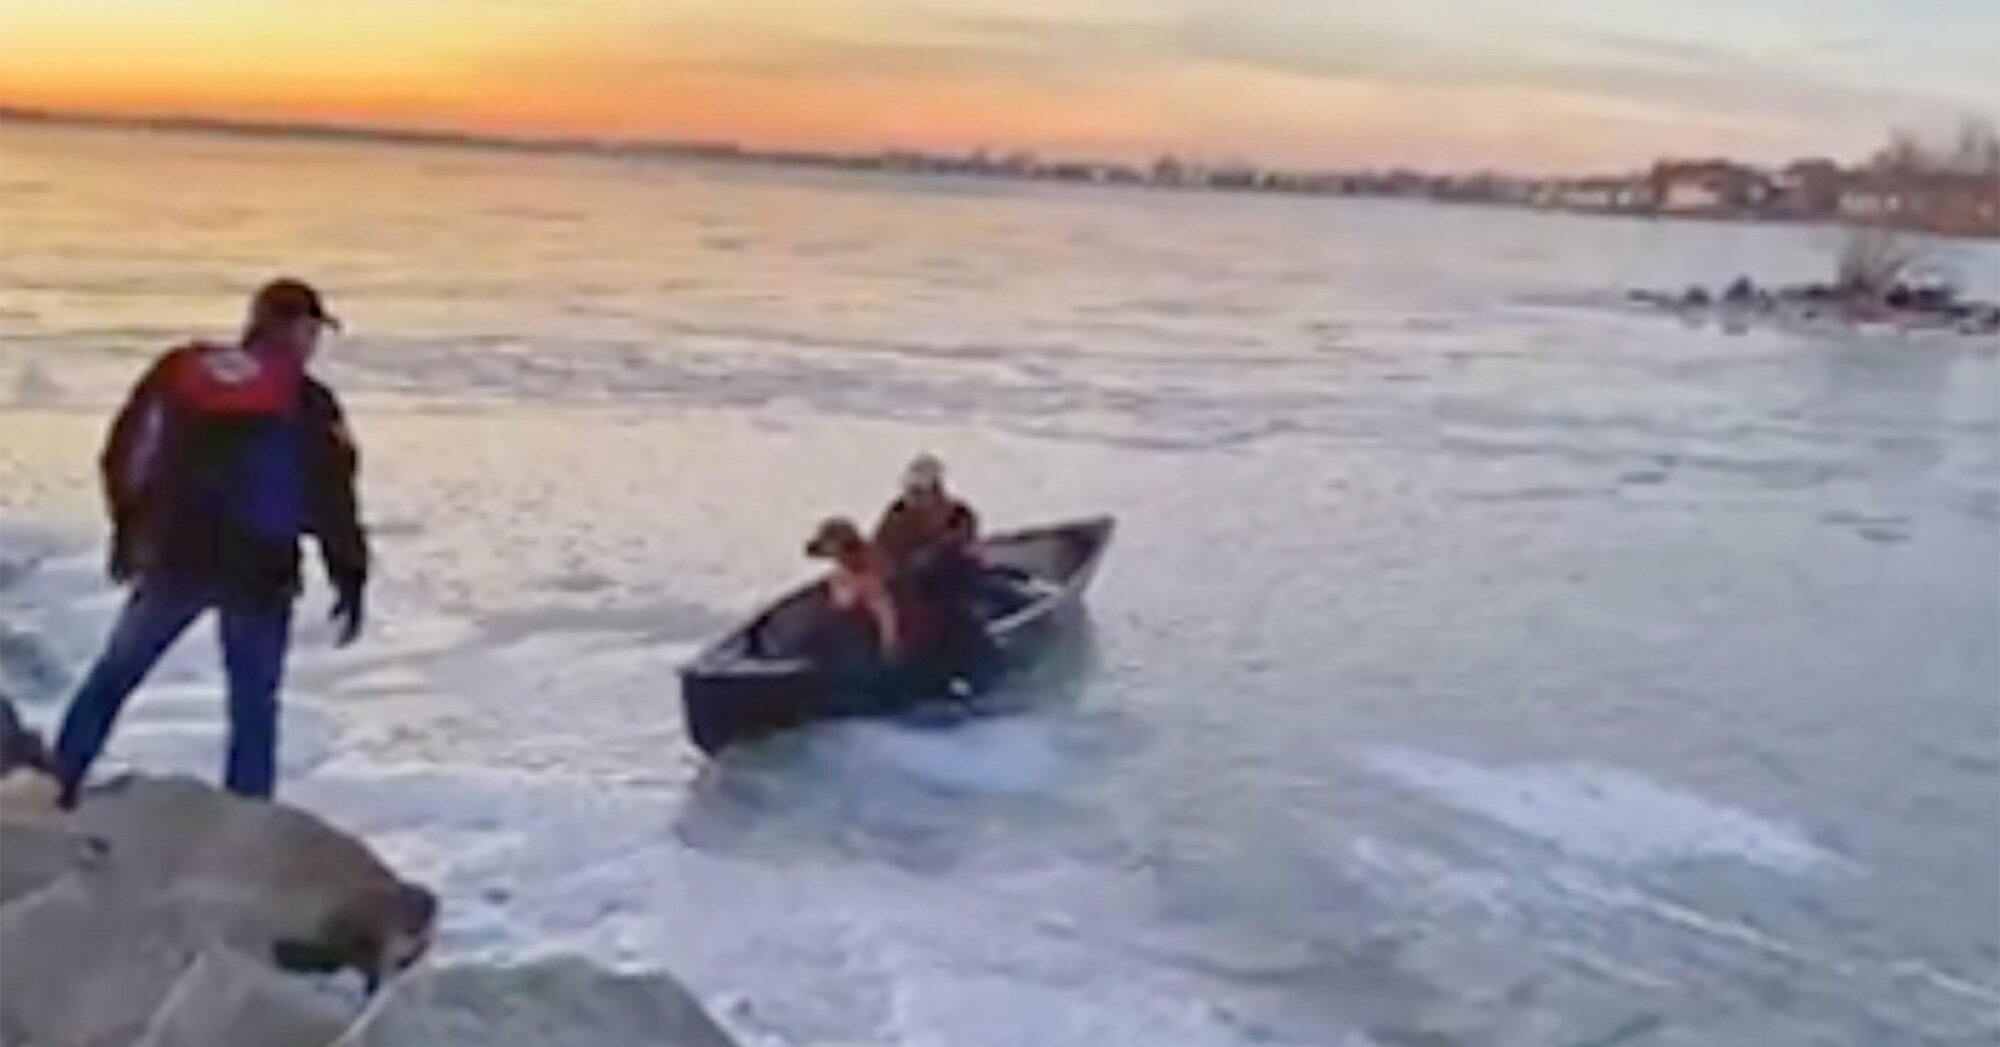 Bystander Risks Own Safety to Reach Labrador Retriever on Icy Lake